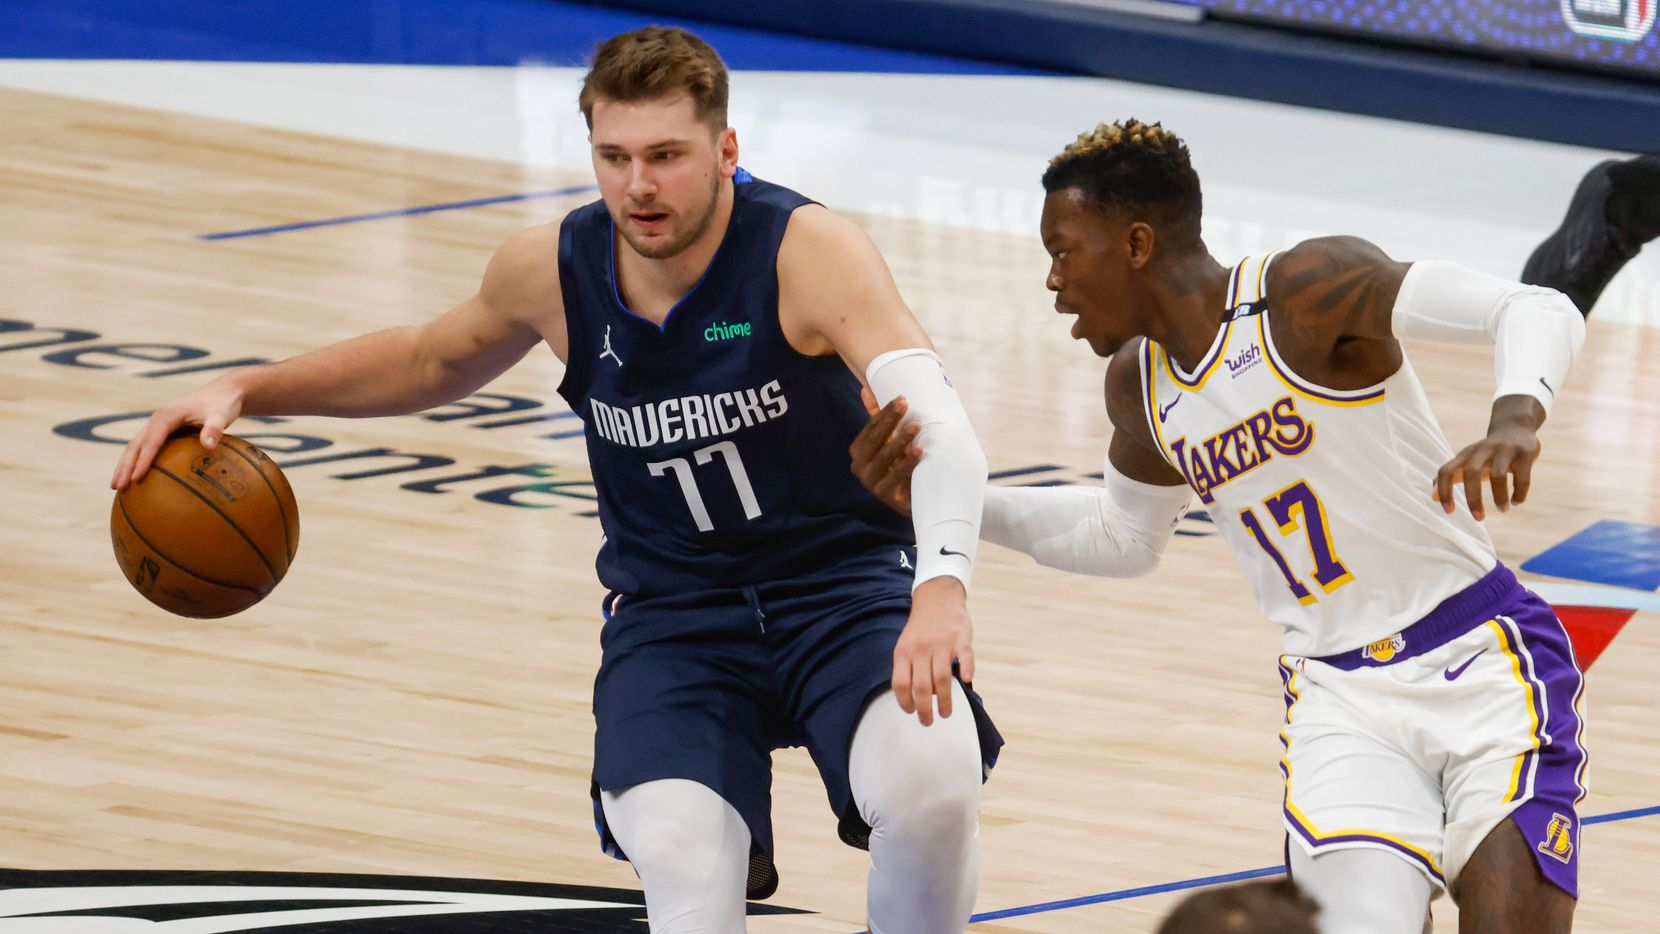 Dallas Mavericks guard Luka Doncic (77) is guarded by Los Angeles Lakers guard Dennis Schroder (17) during the first quarter at the American Airlines Center on Saturday, April 24, 2021, in Dallas.